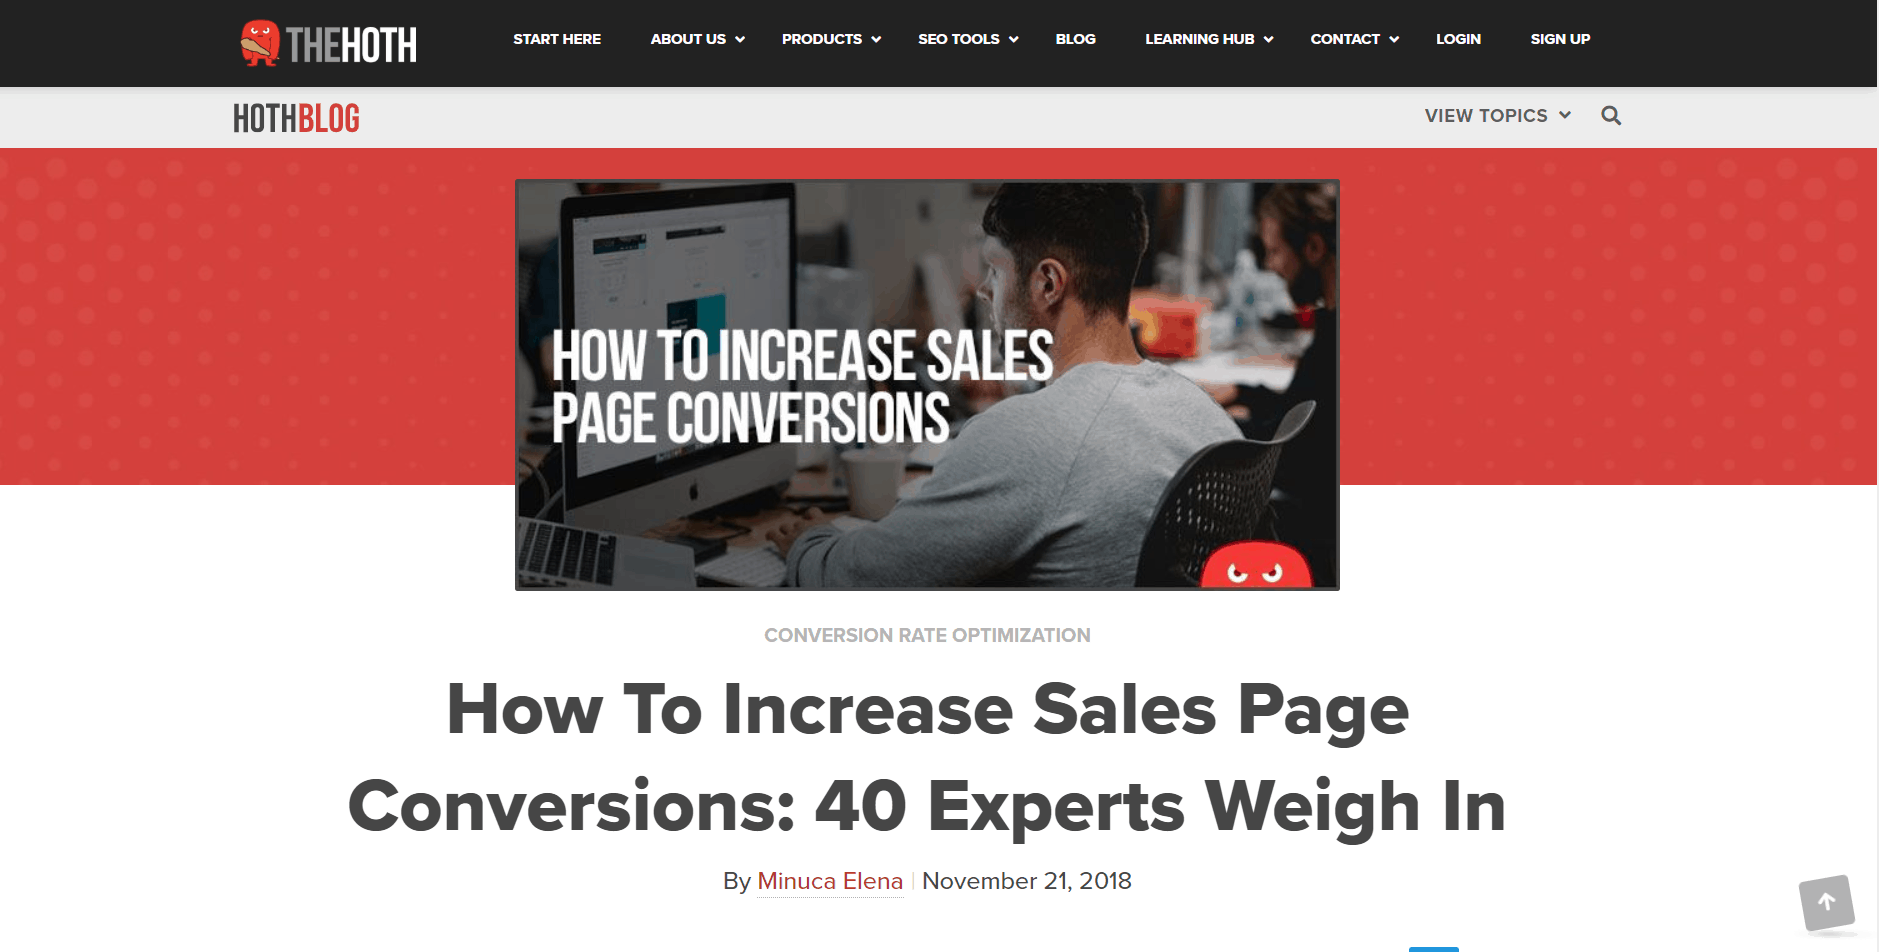 Sales page conversions expert roundup by Minuca Elena